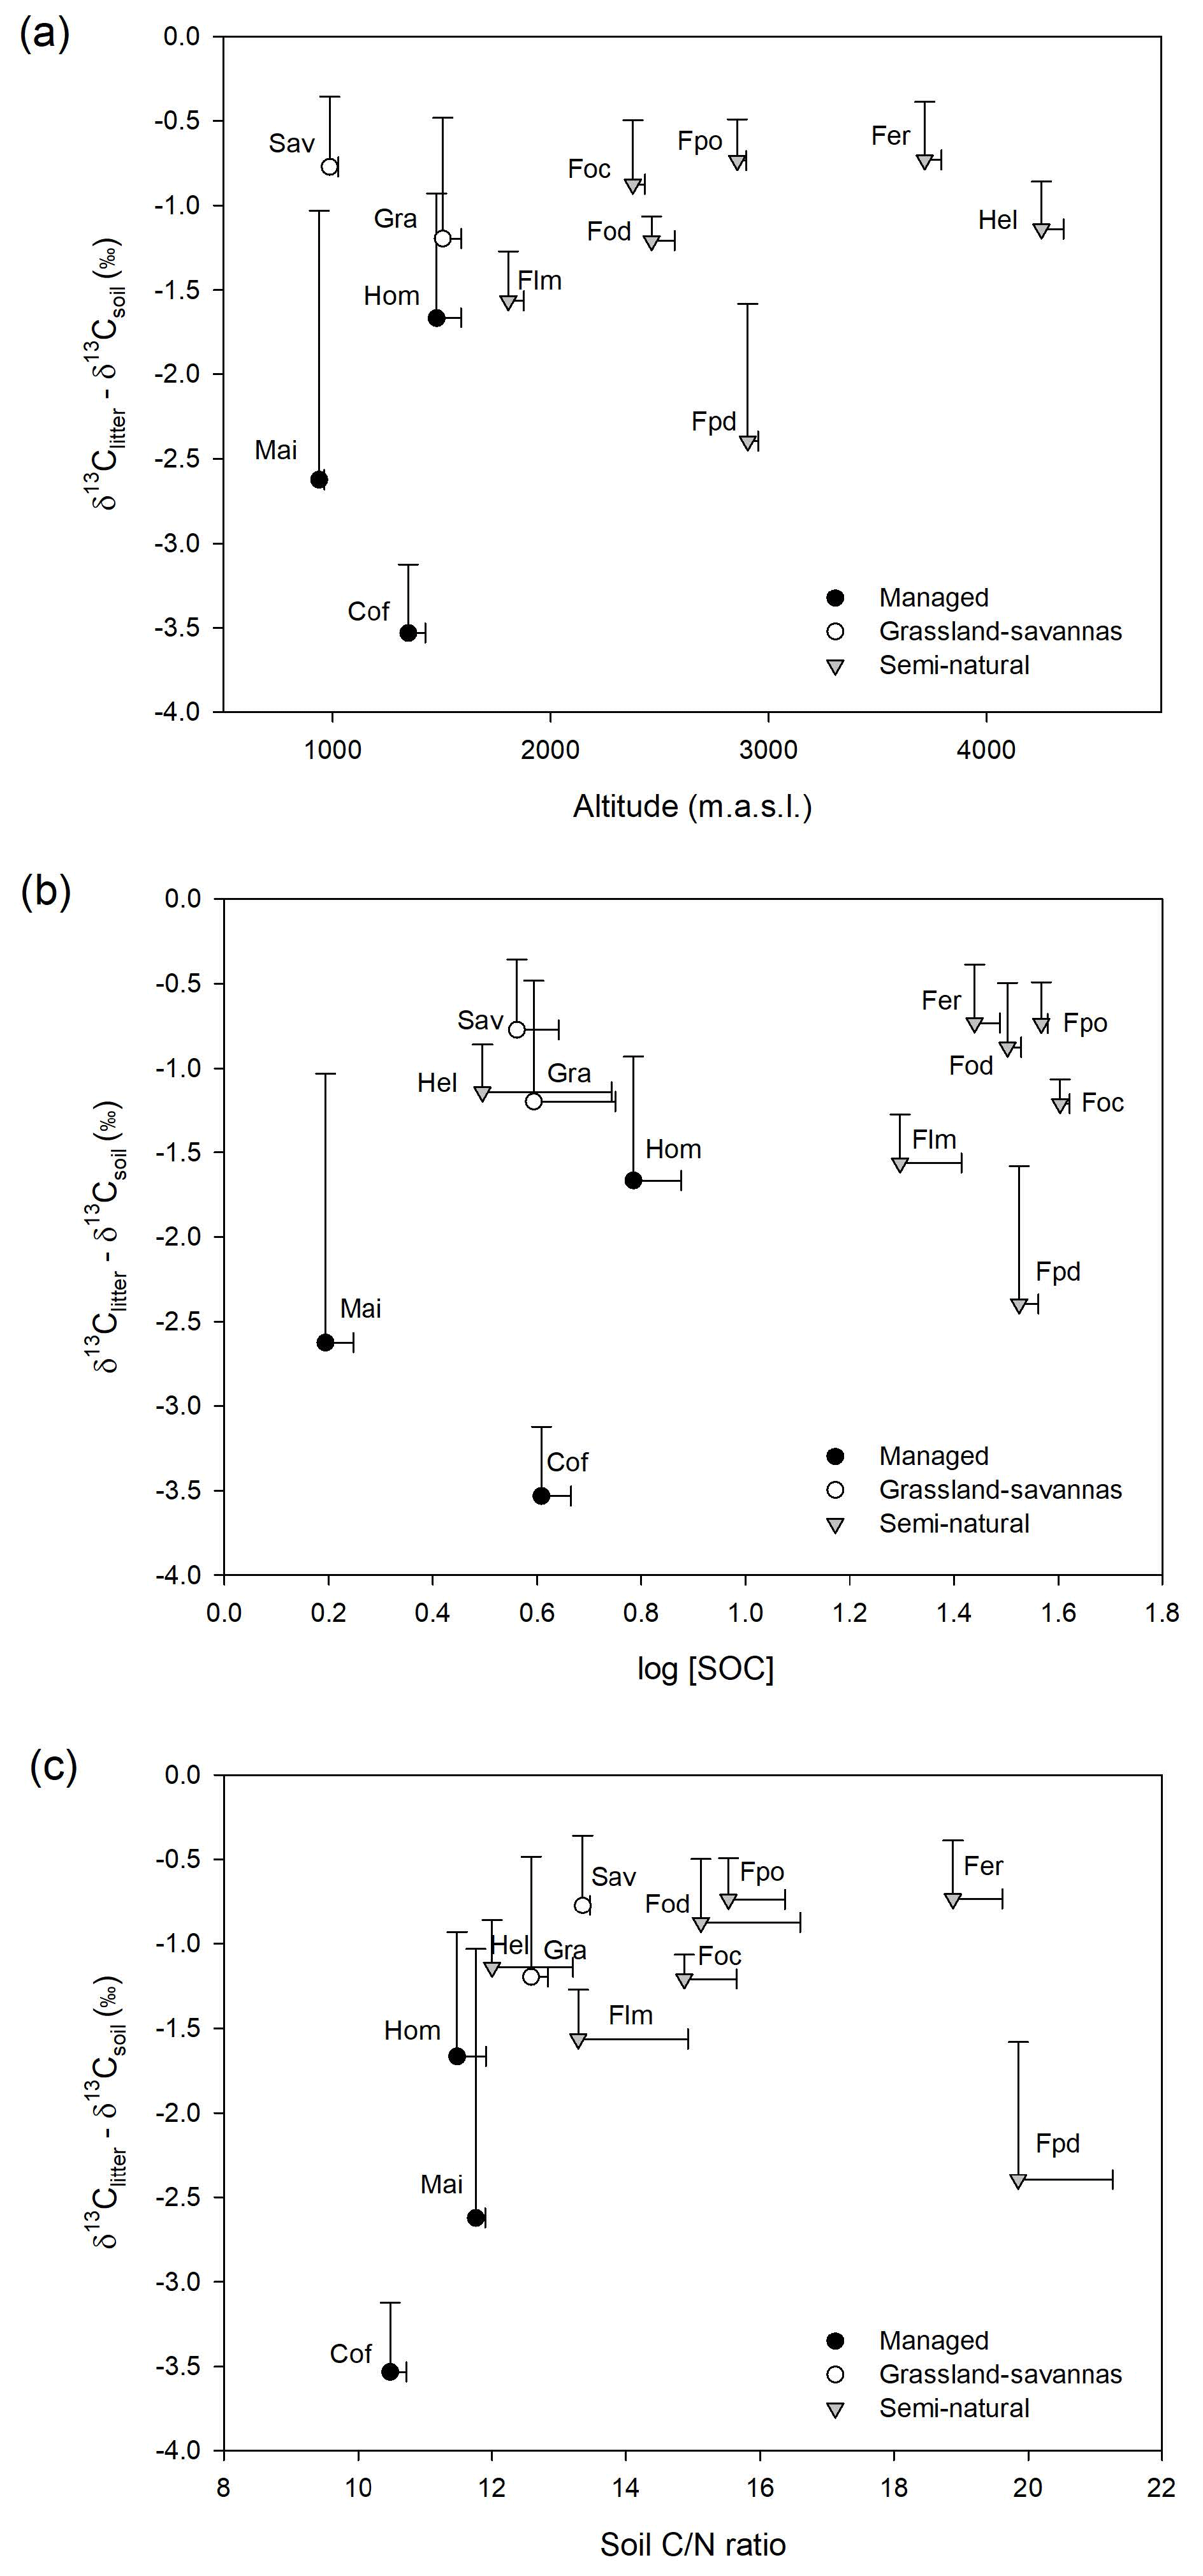 BG - Stable carbon and nitrogen isotopic composition of